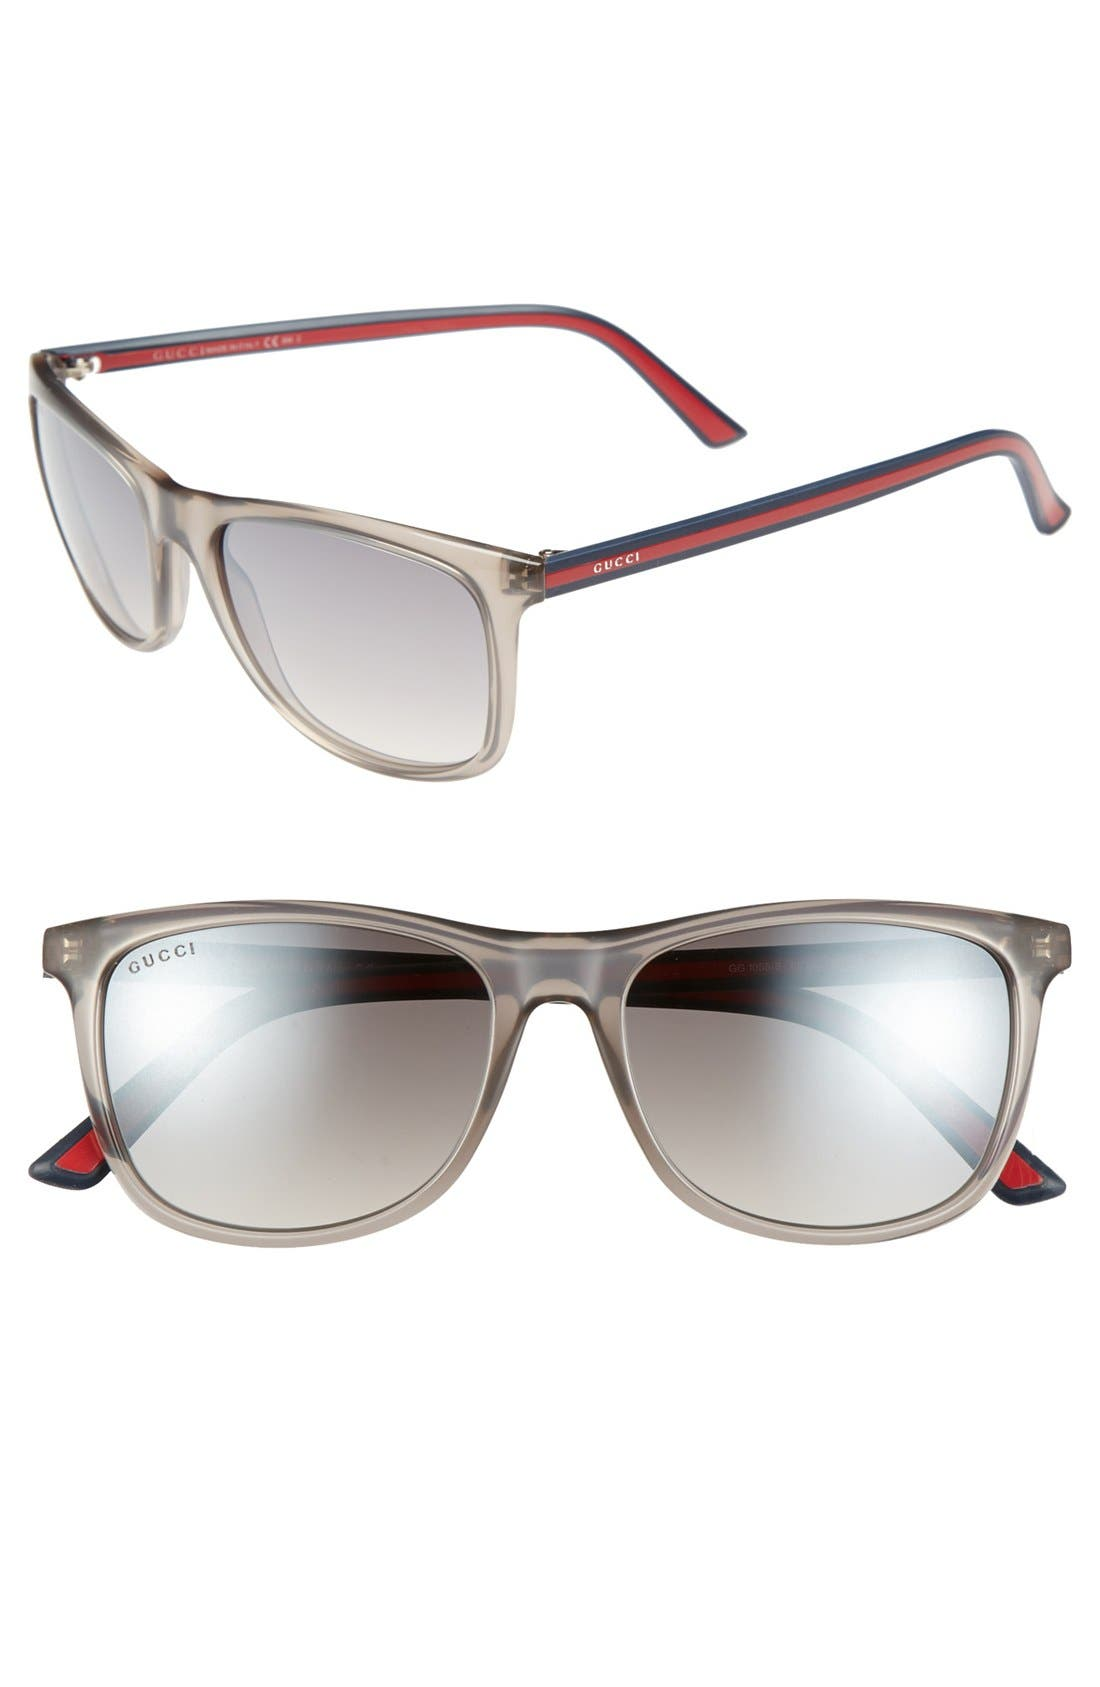 Main Image - Gucci 55mm Sunglasses